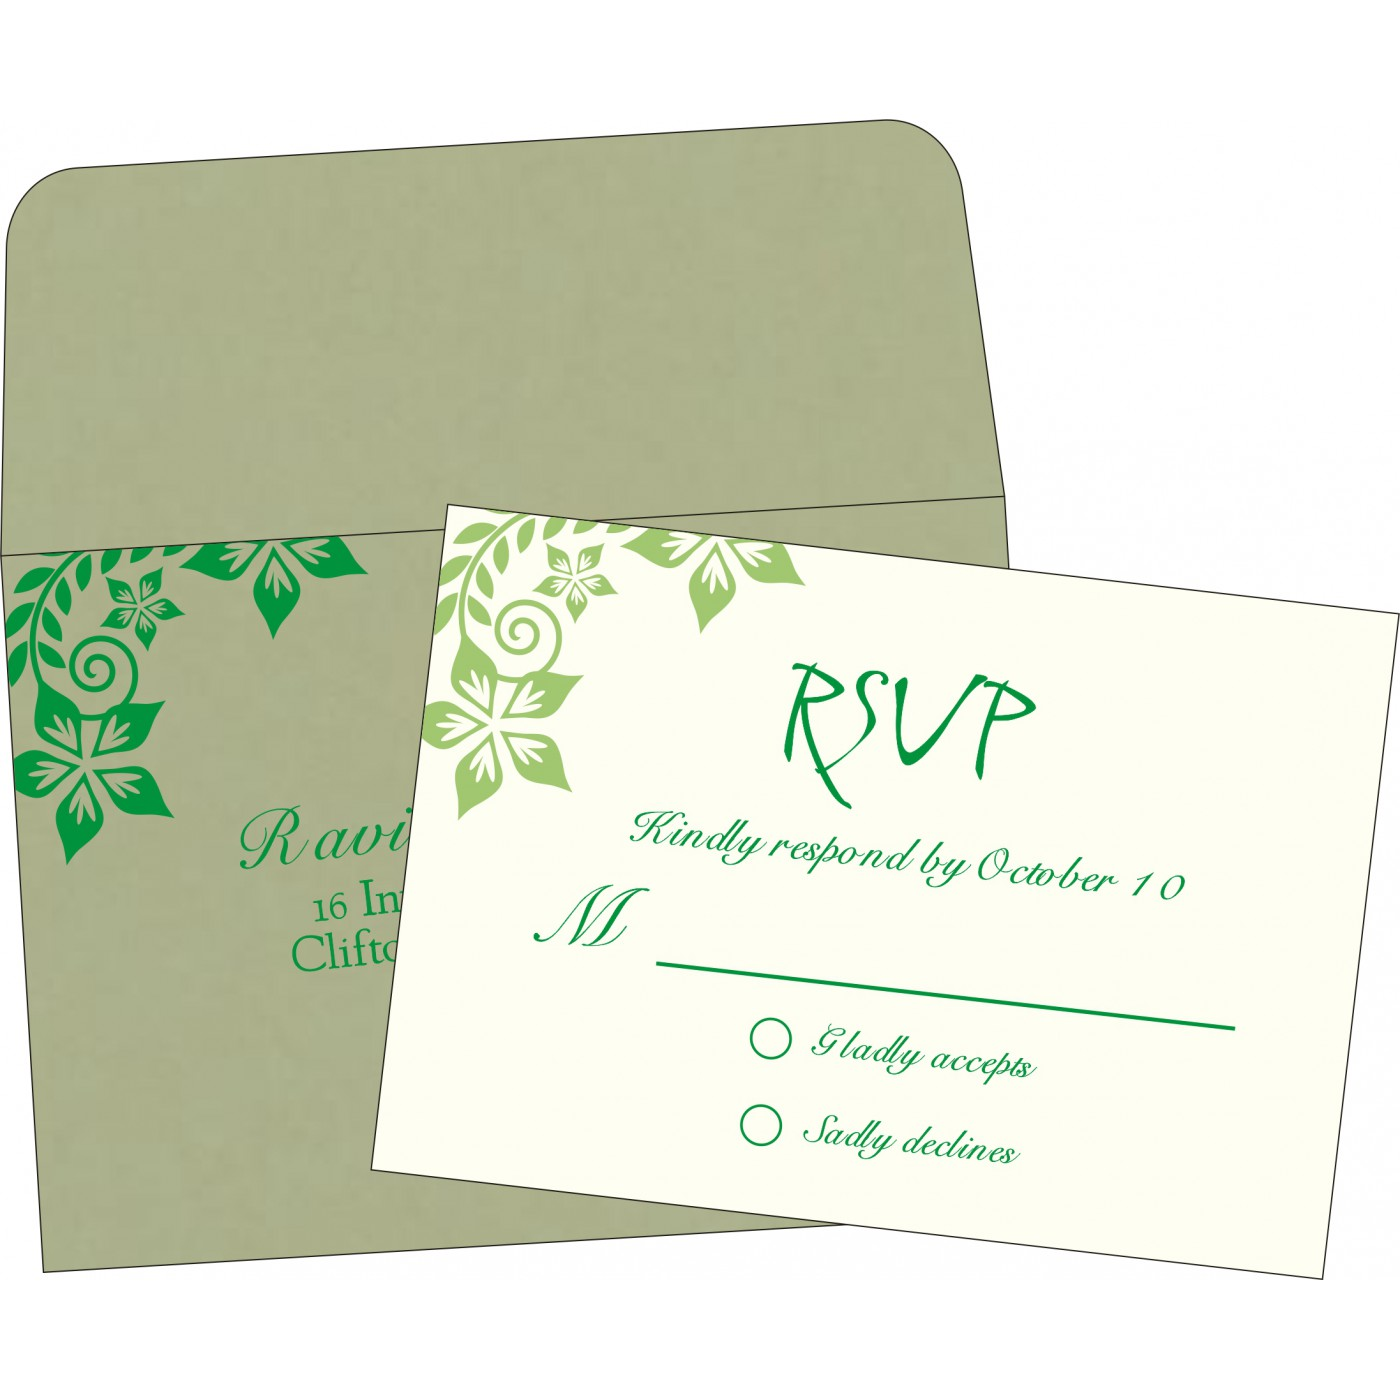 RSVP Cards : RSVP-8240I - 123WeddingCards